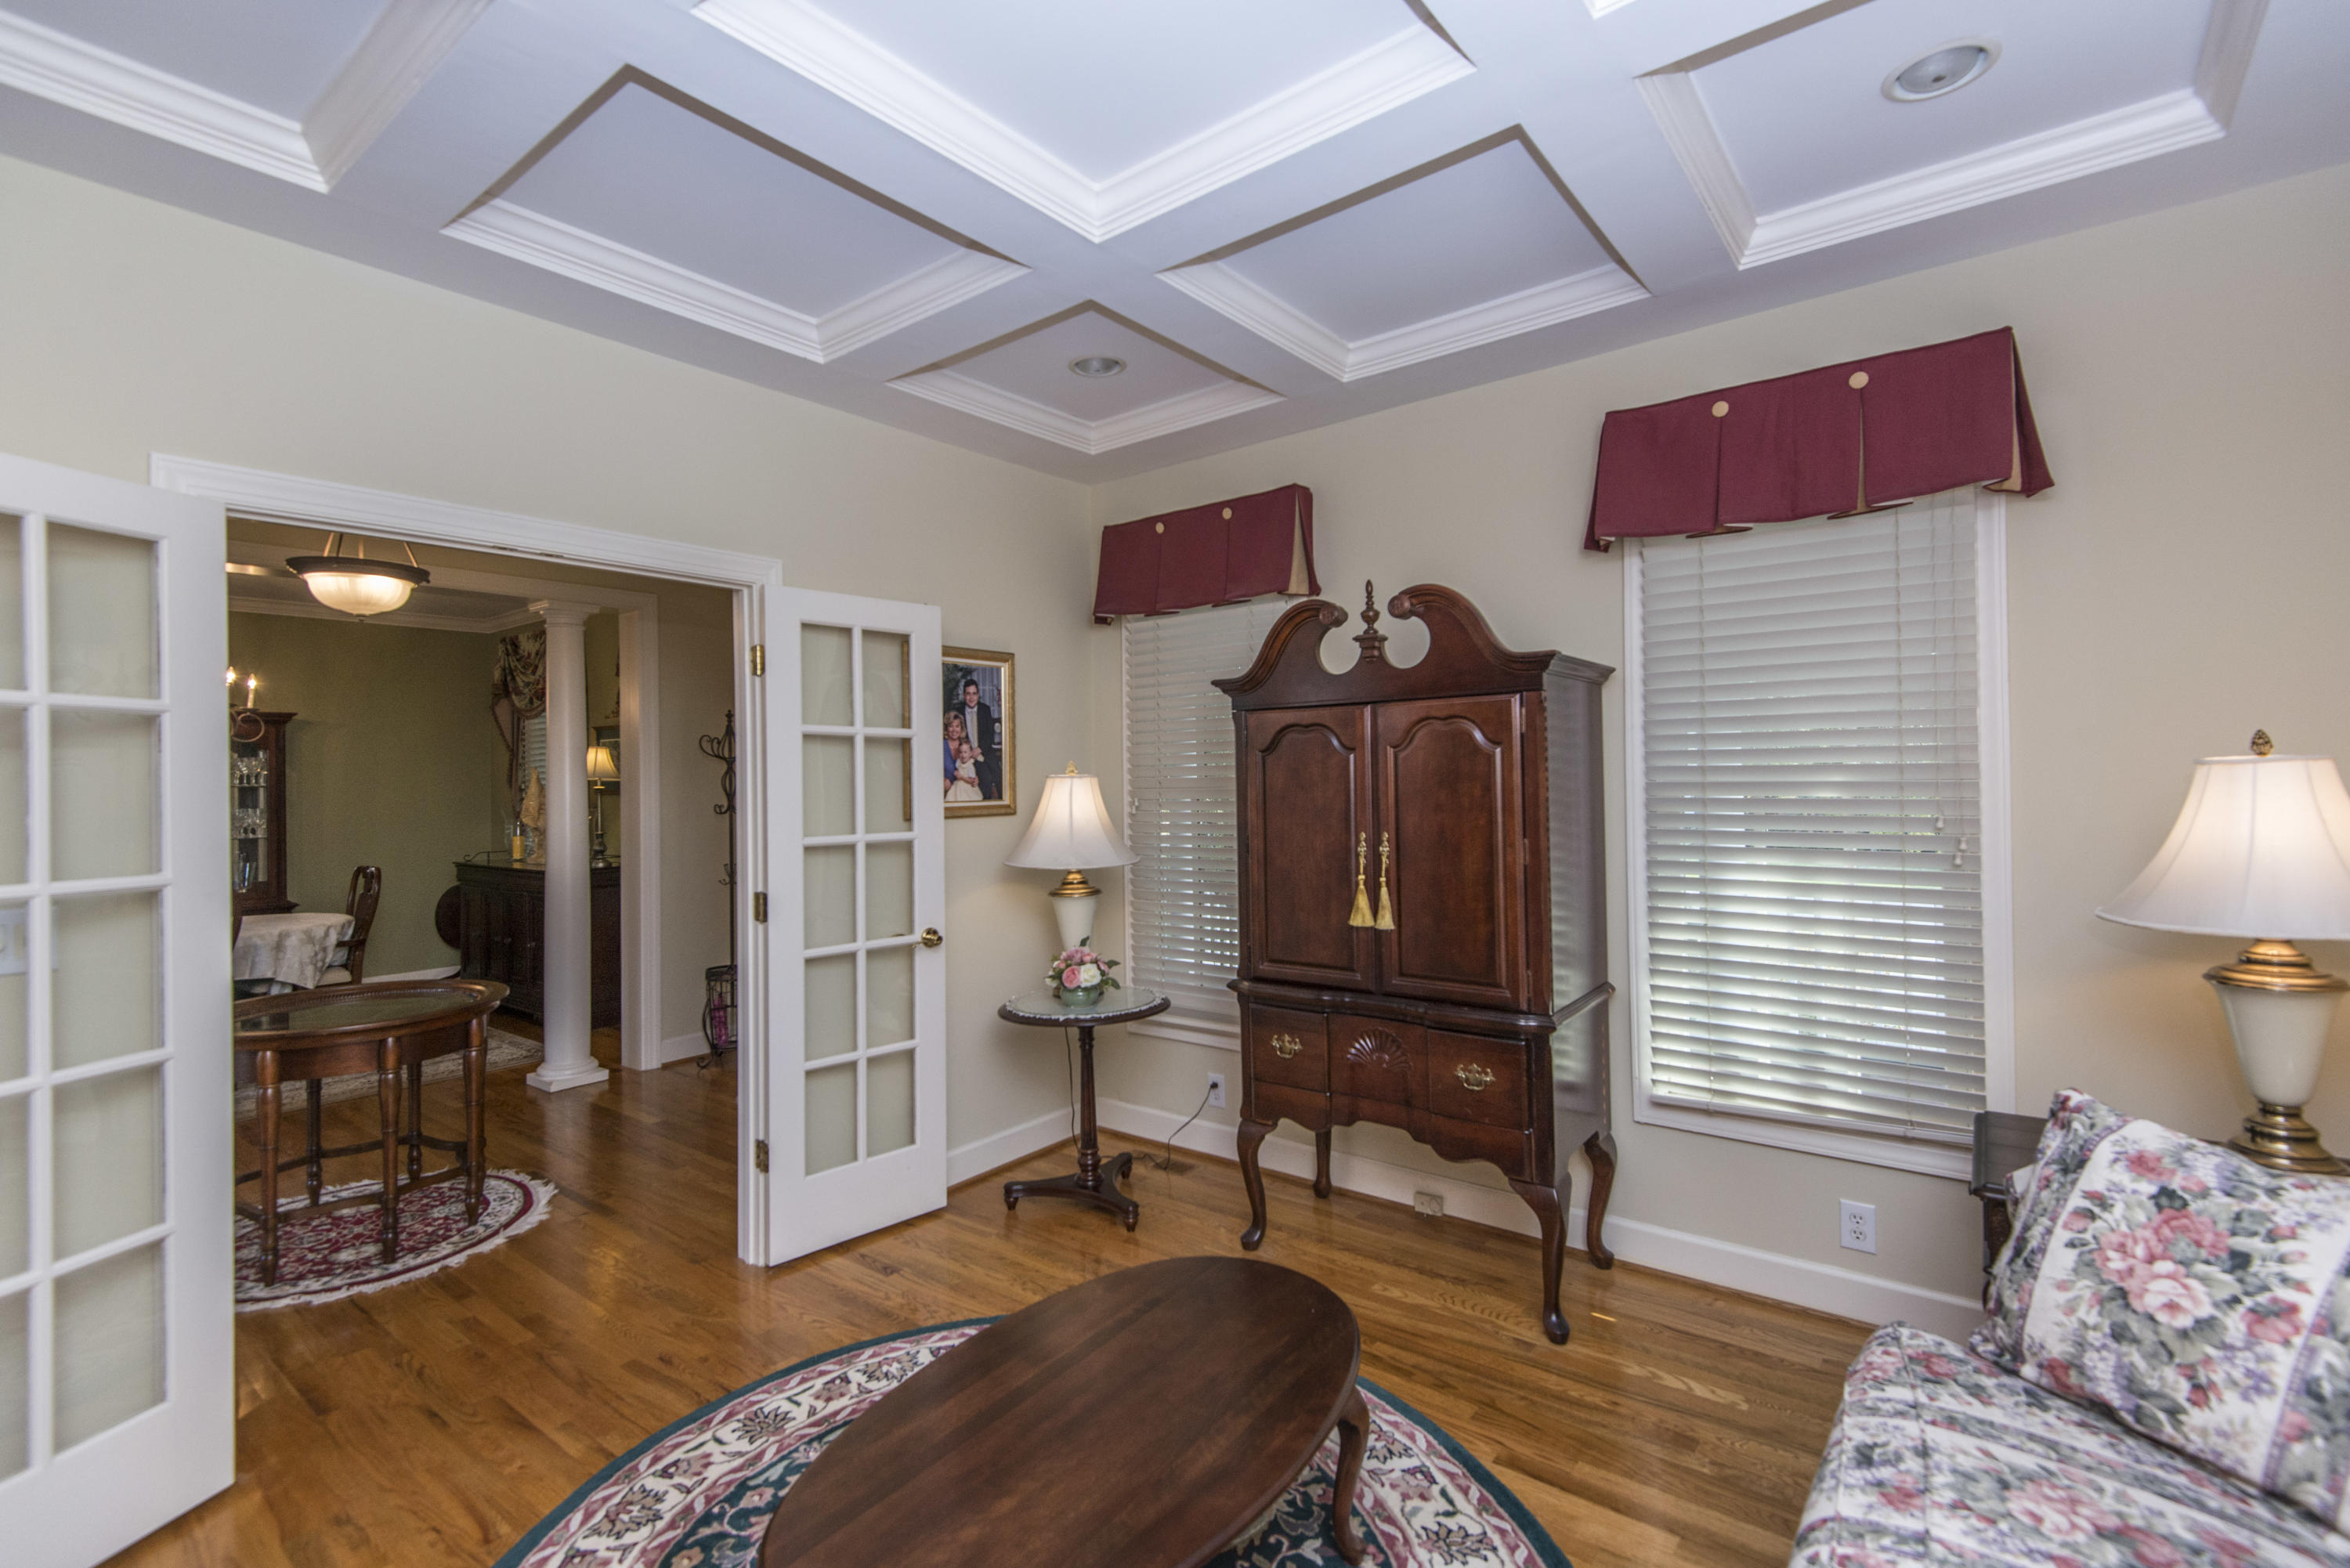 Stiles Point Plantation Homes For Sale - 906 Kushiwah Creek, Charleston, SC - 21